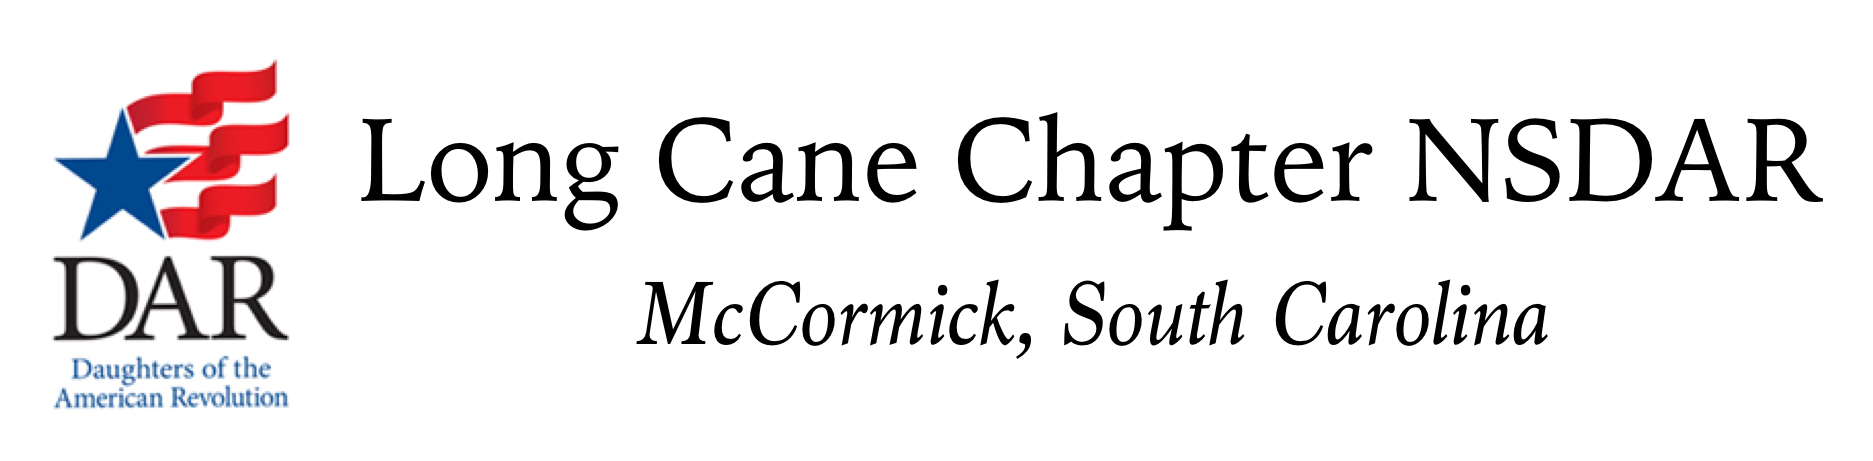 Long Cane Banner.PNG